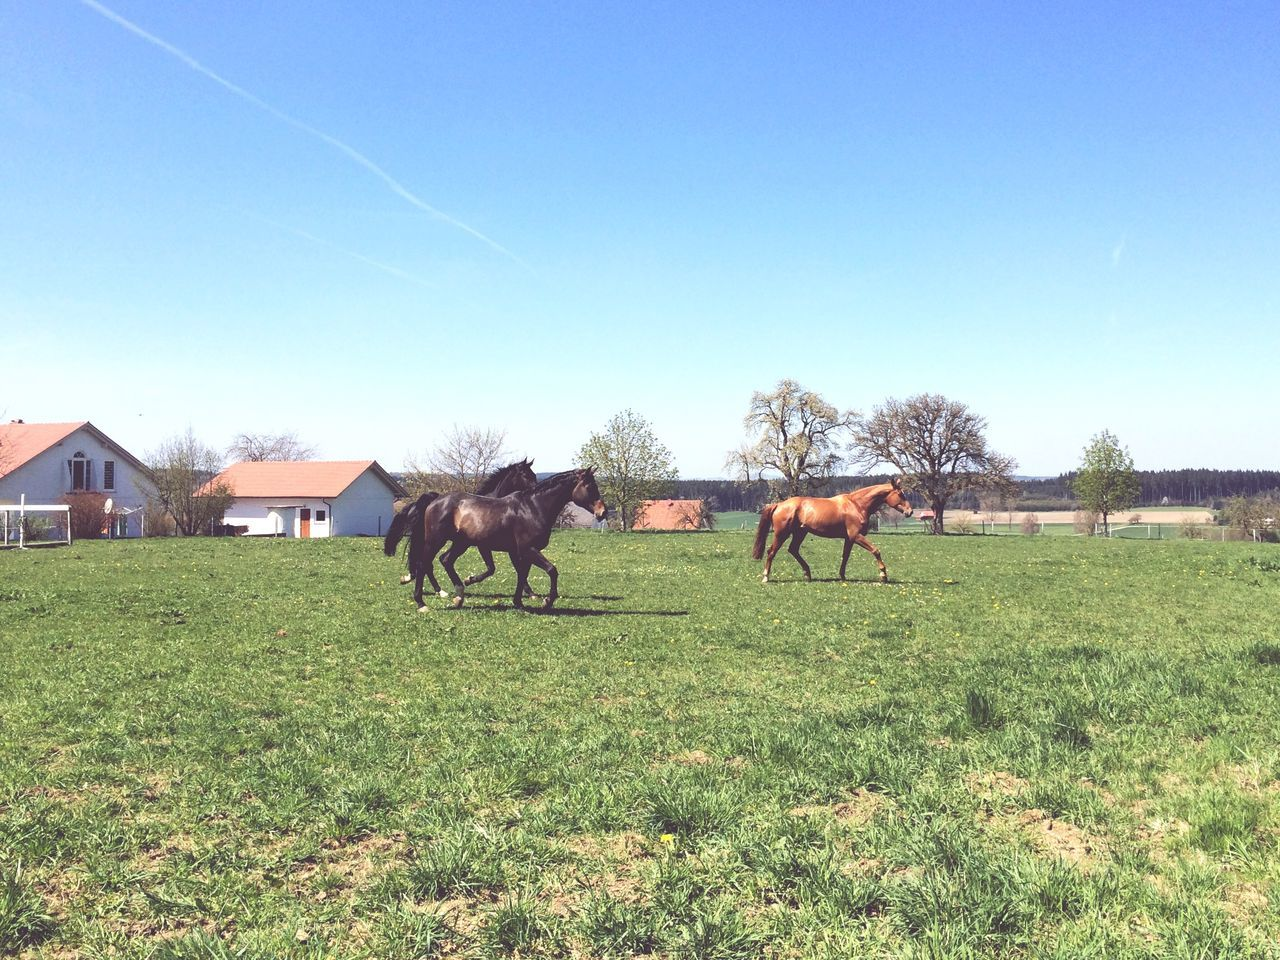 Horses Running Galopp Horsepower Horse I Love Horses Freedom Free Healthy